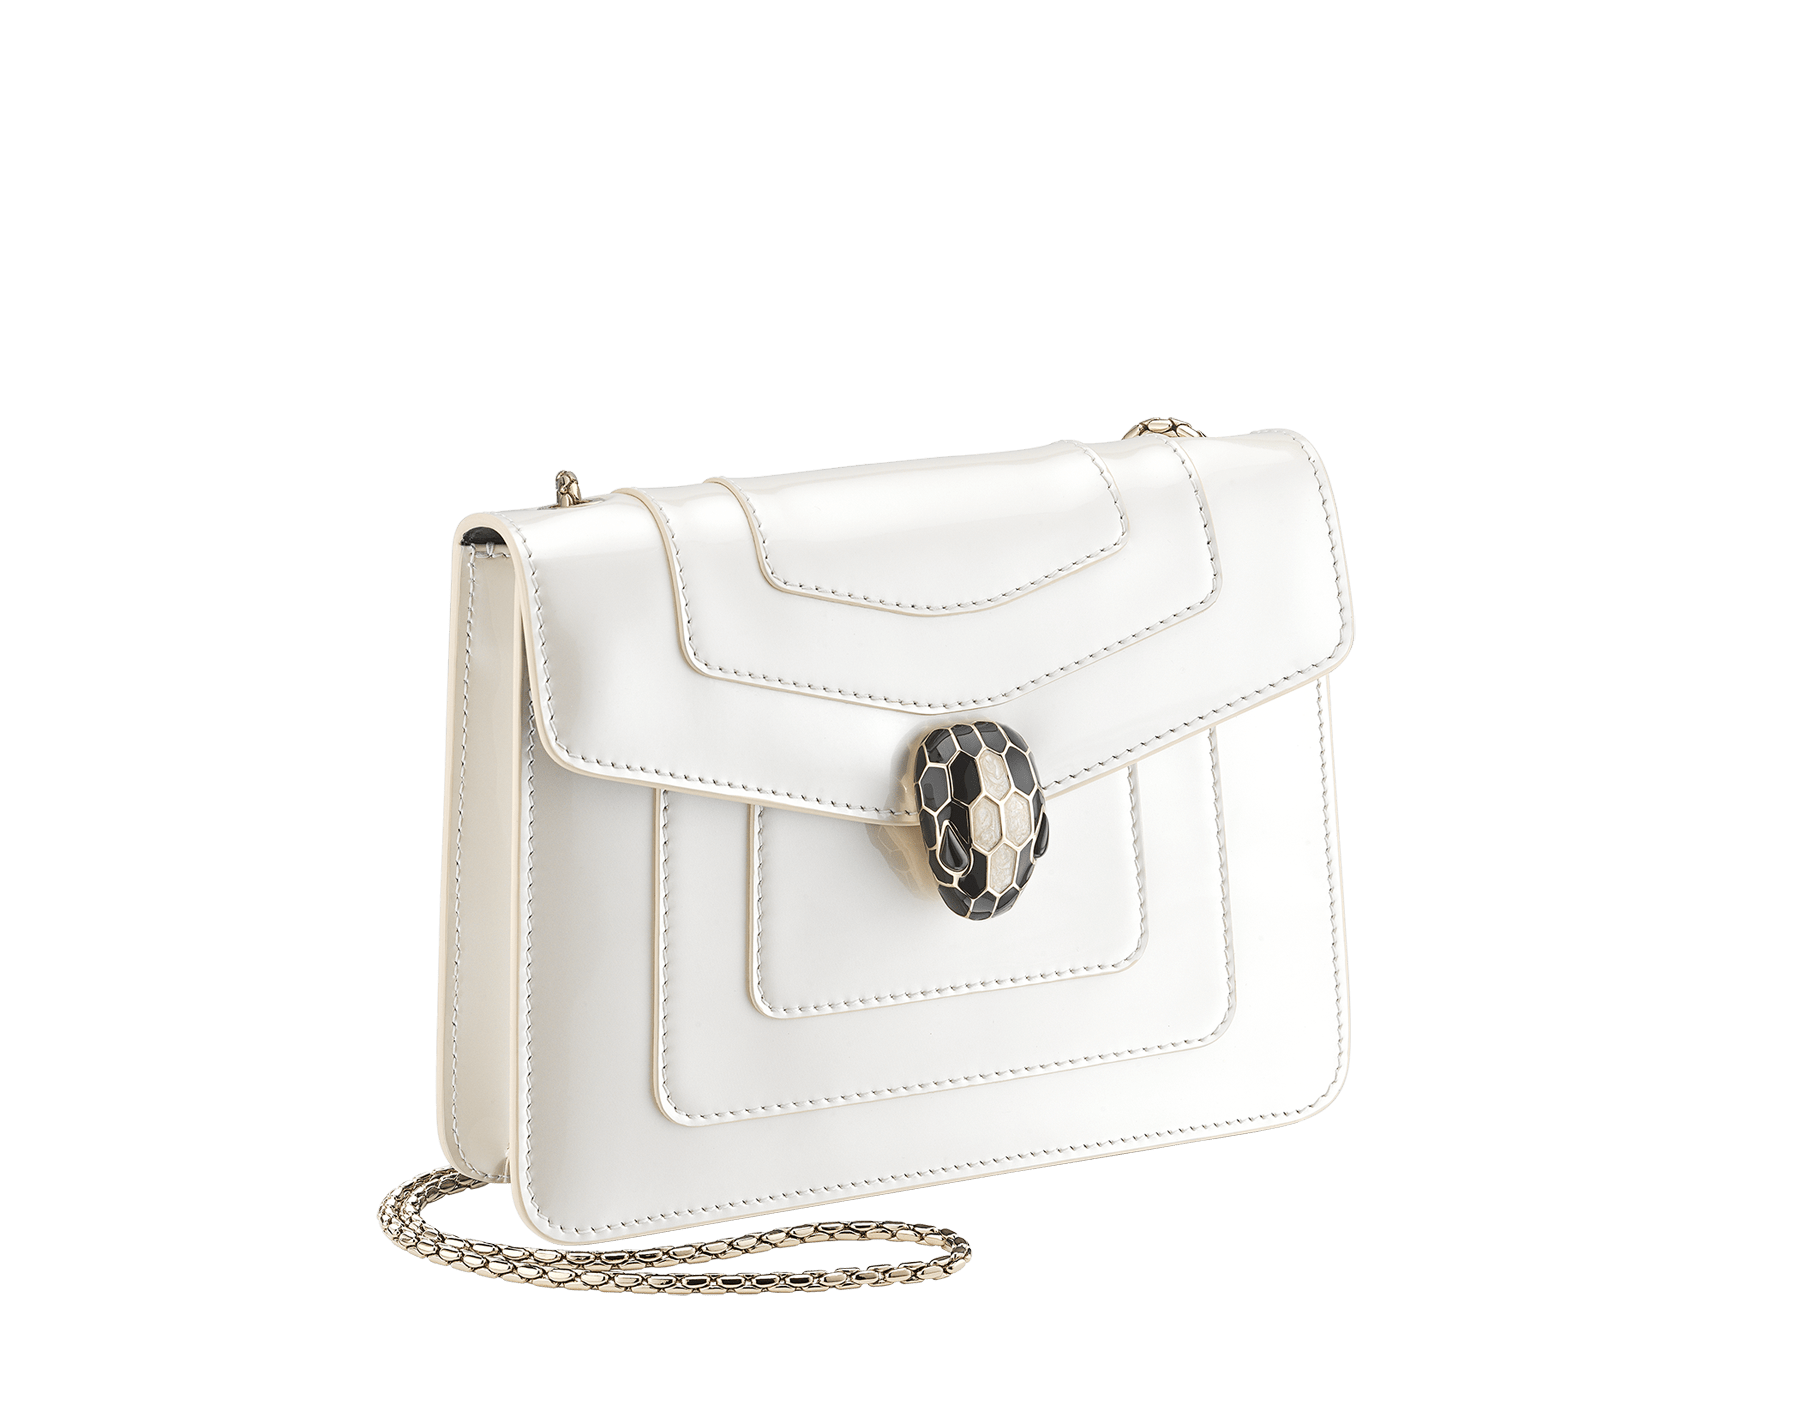 """Serpenti Forever"" crossbody bag in white agate calf leather with a varnished and pearled effect. Iconic snakehead closure in light gold plated brass enriched with black and pearled white agate enamel, and black onyx eyes 289769 image 2"